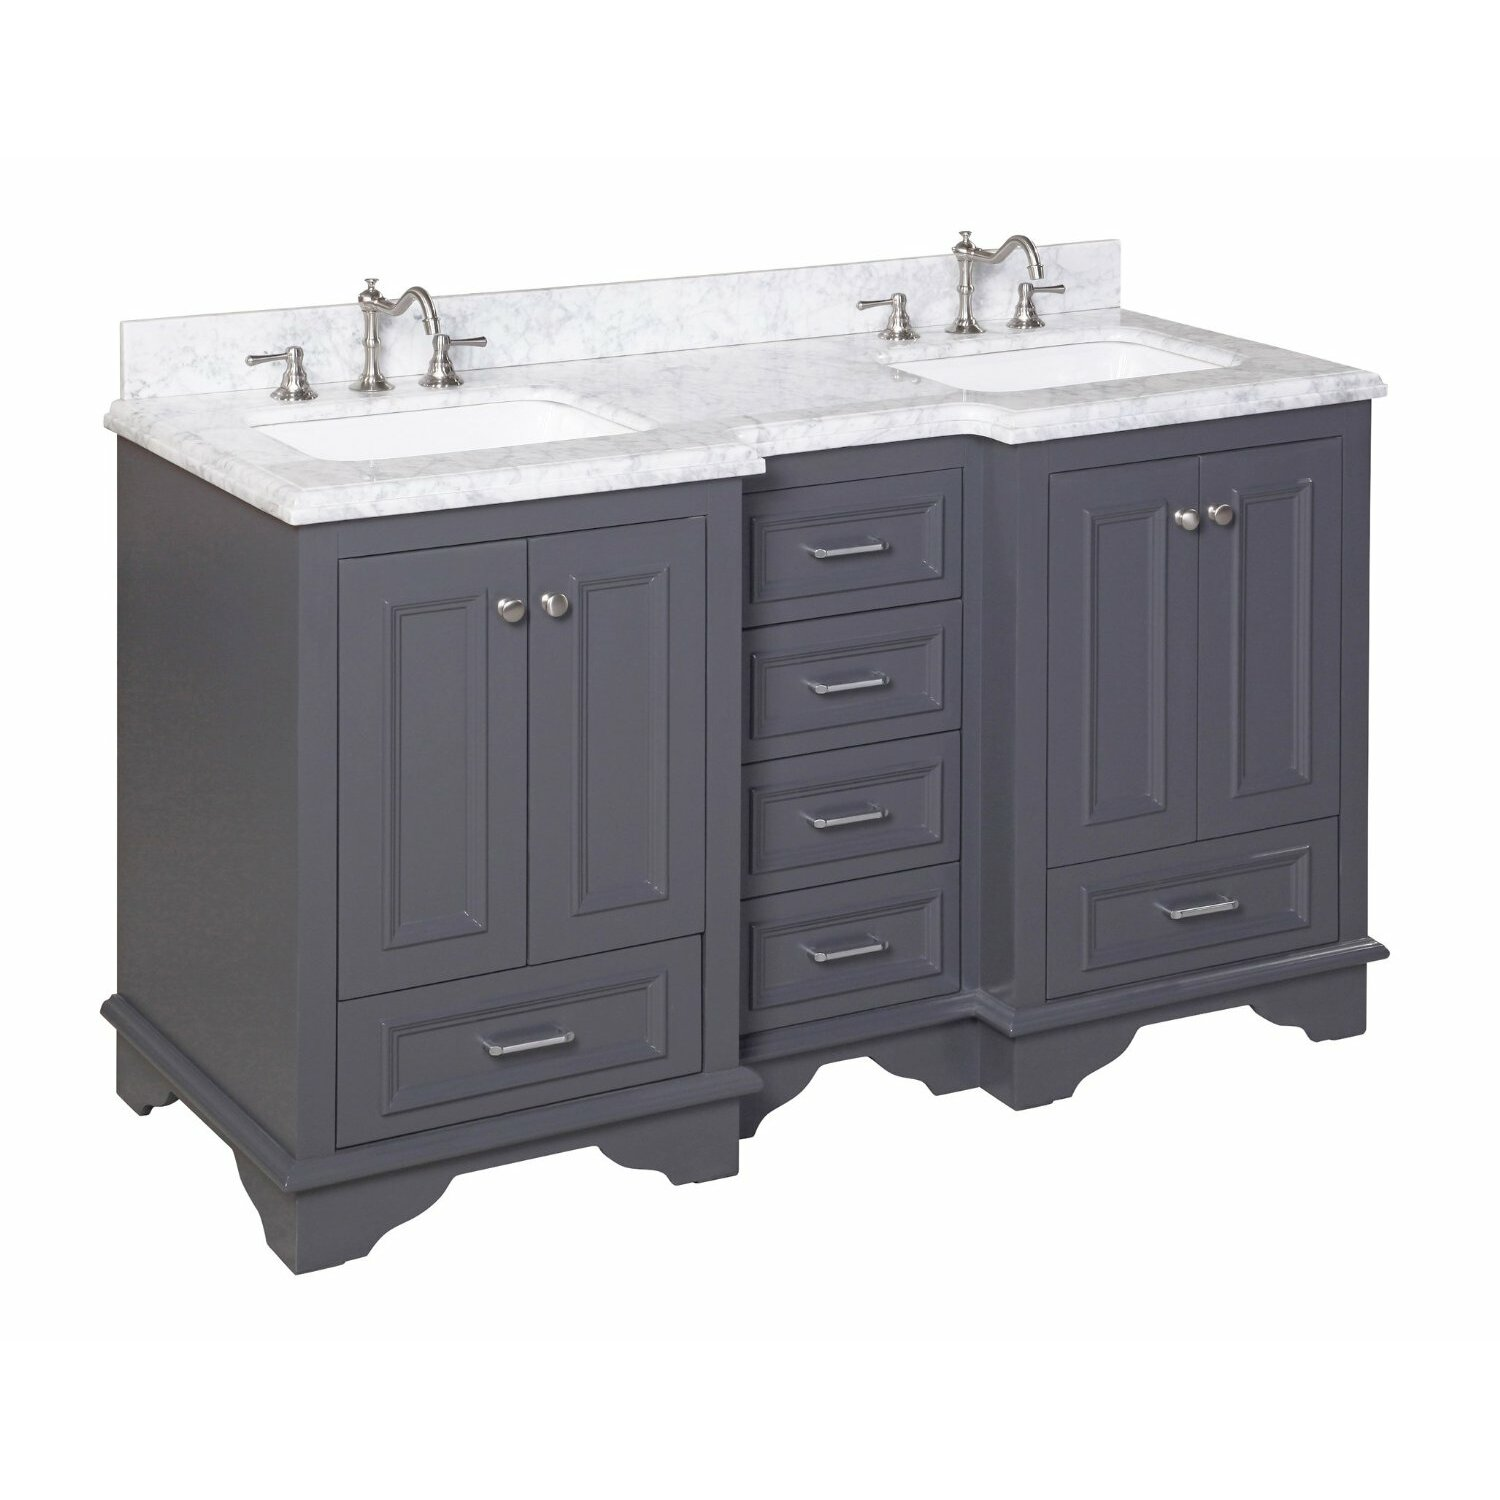 Kbc Nantucket 60 Double Sink Bathroom Vanity Set